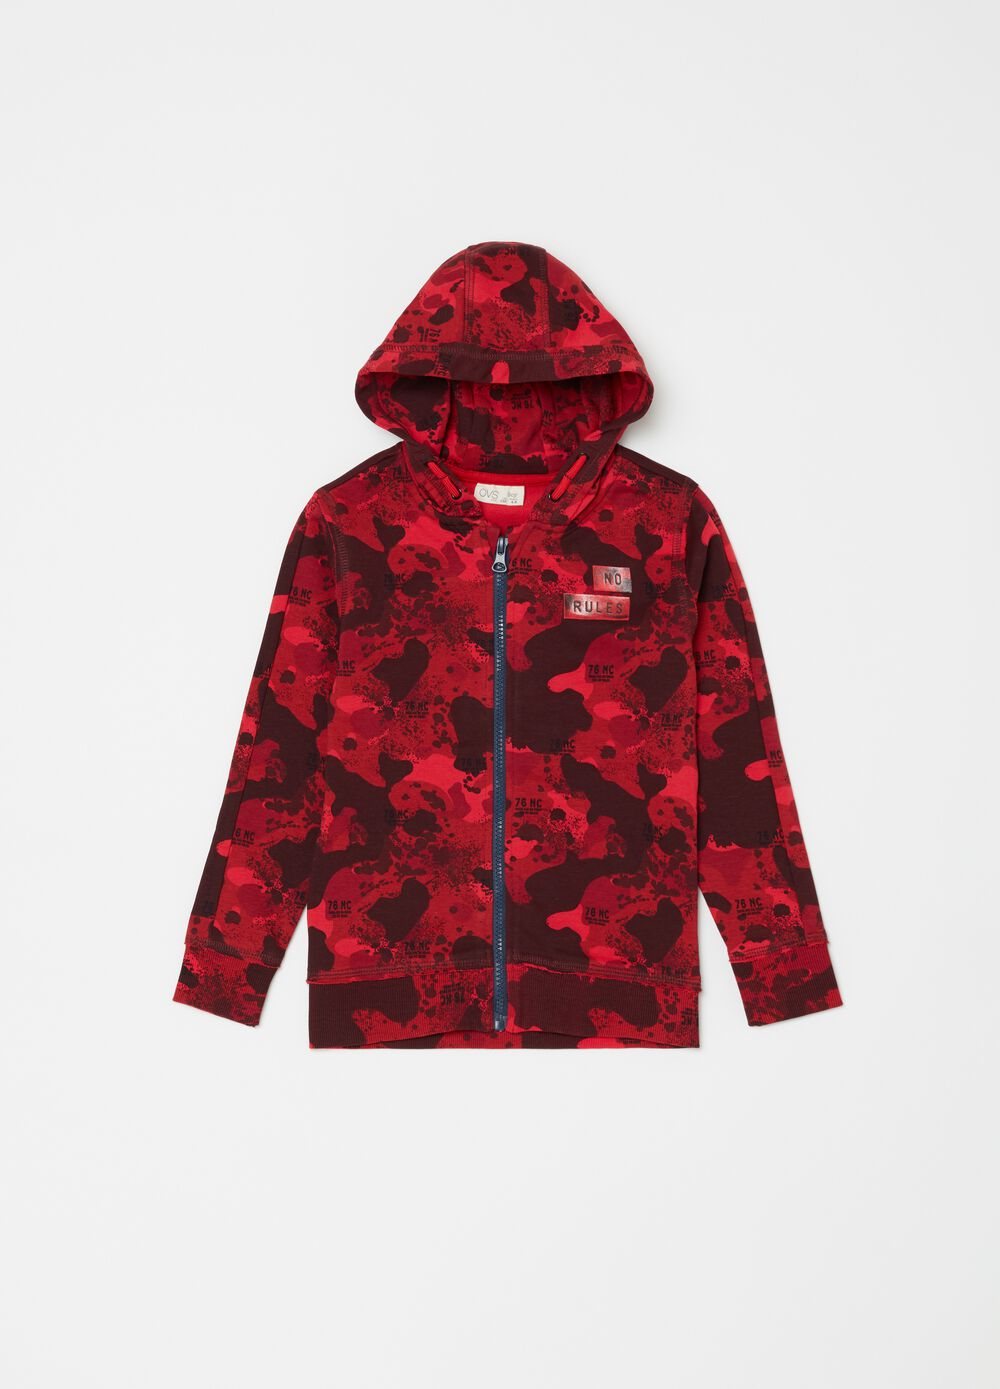 Camouflage patterned hoodie